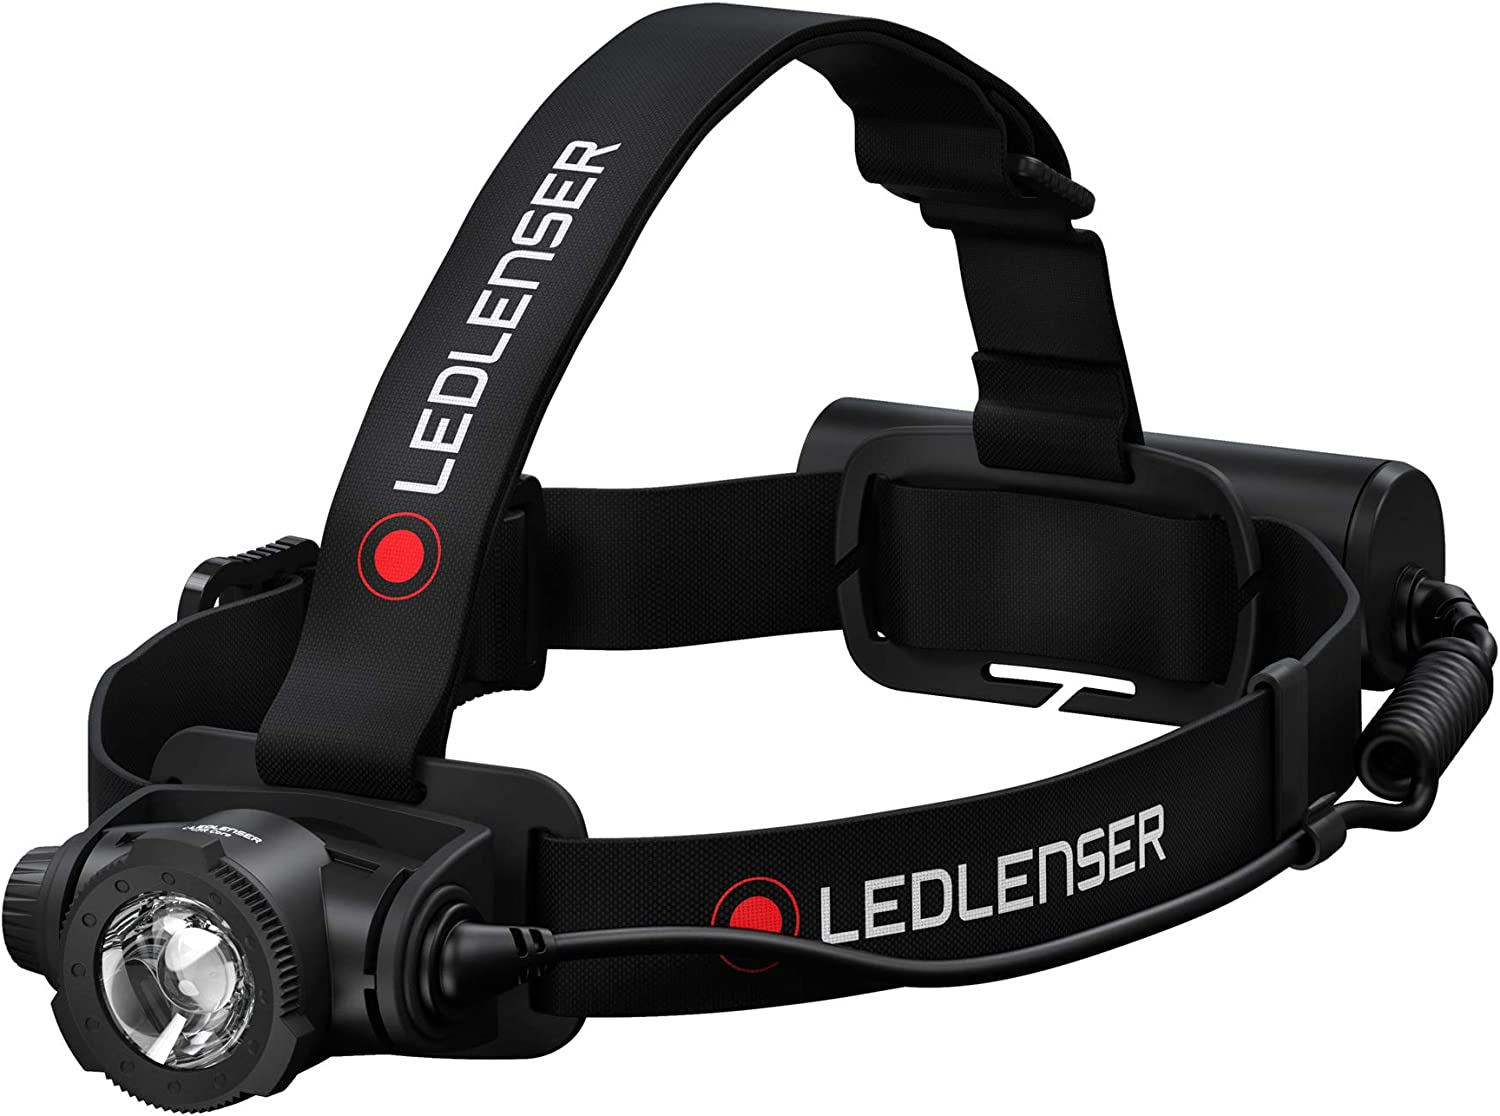 Ledlenser 2500 Lumens Ledlenser Connecting System Advanced Focus System Waterproof Constant Light Output Magnetic Charge System H15R Core Rechargeable Headlamp Dimmable Dustproof